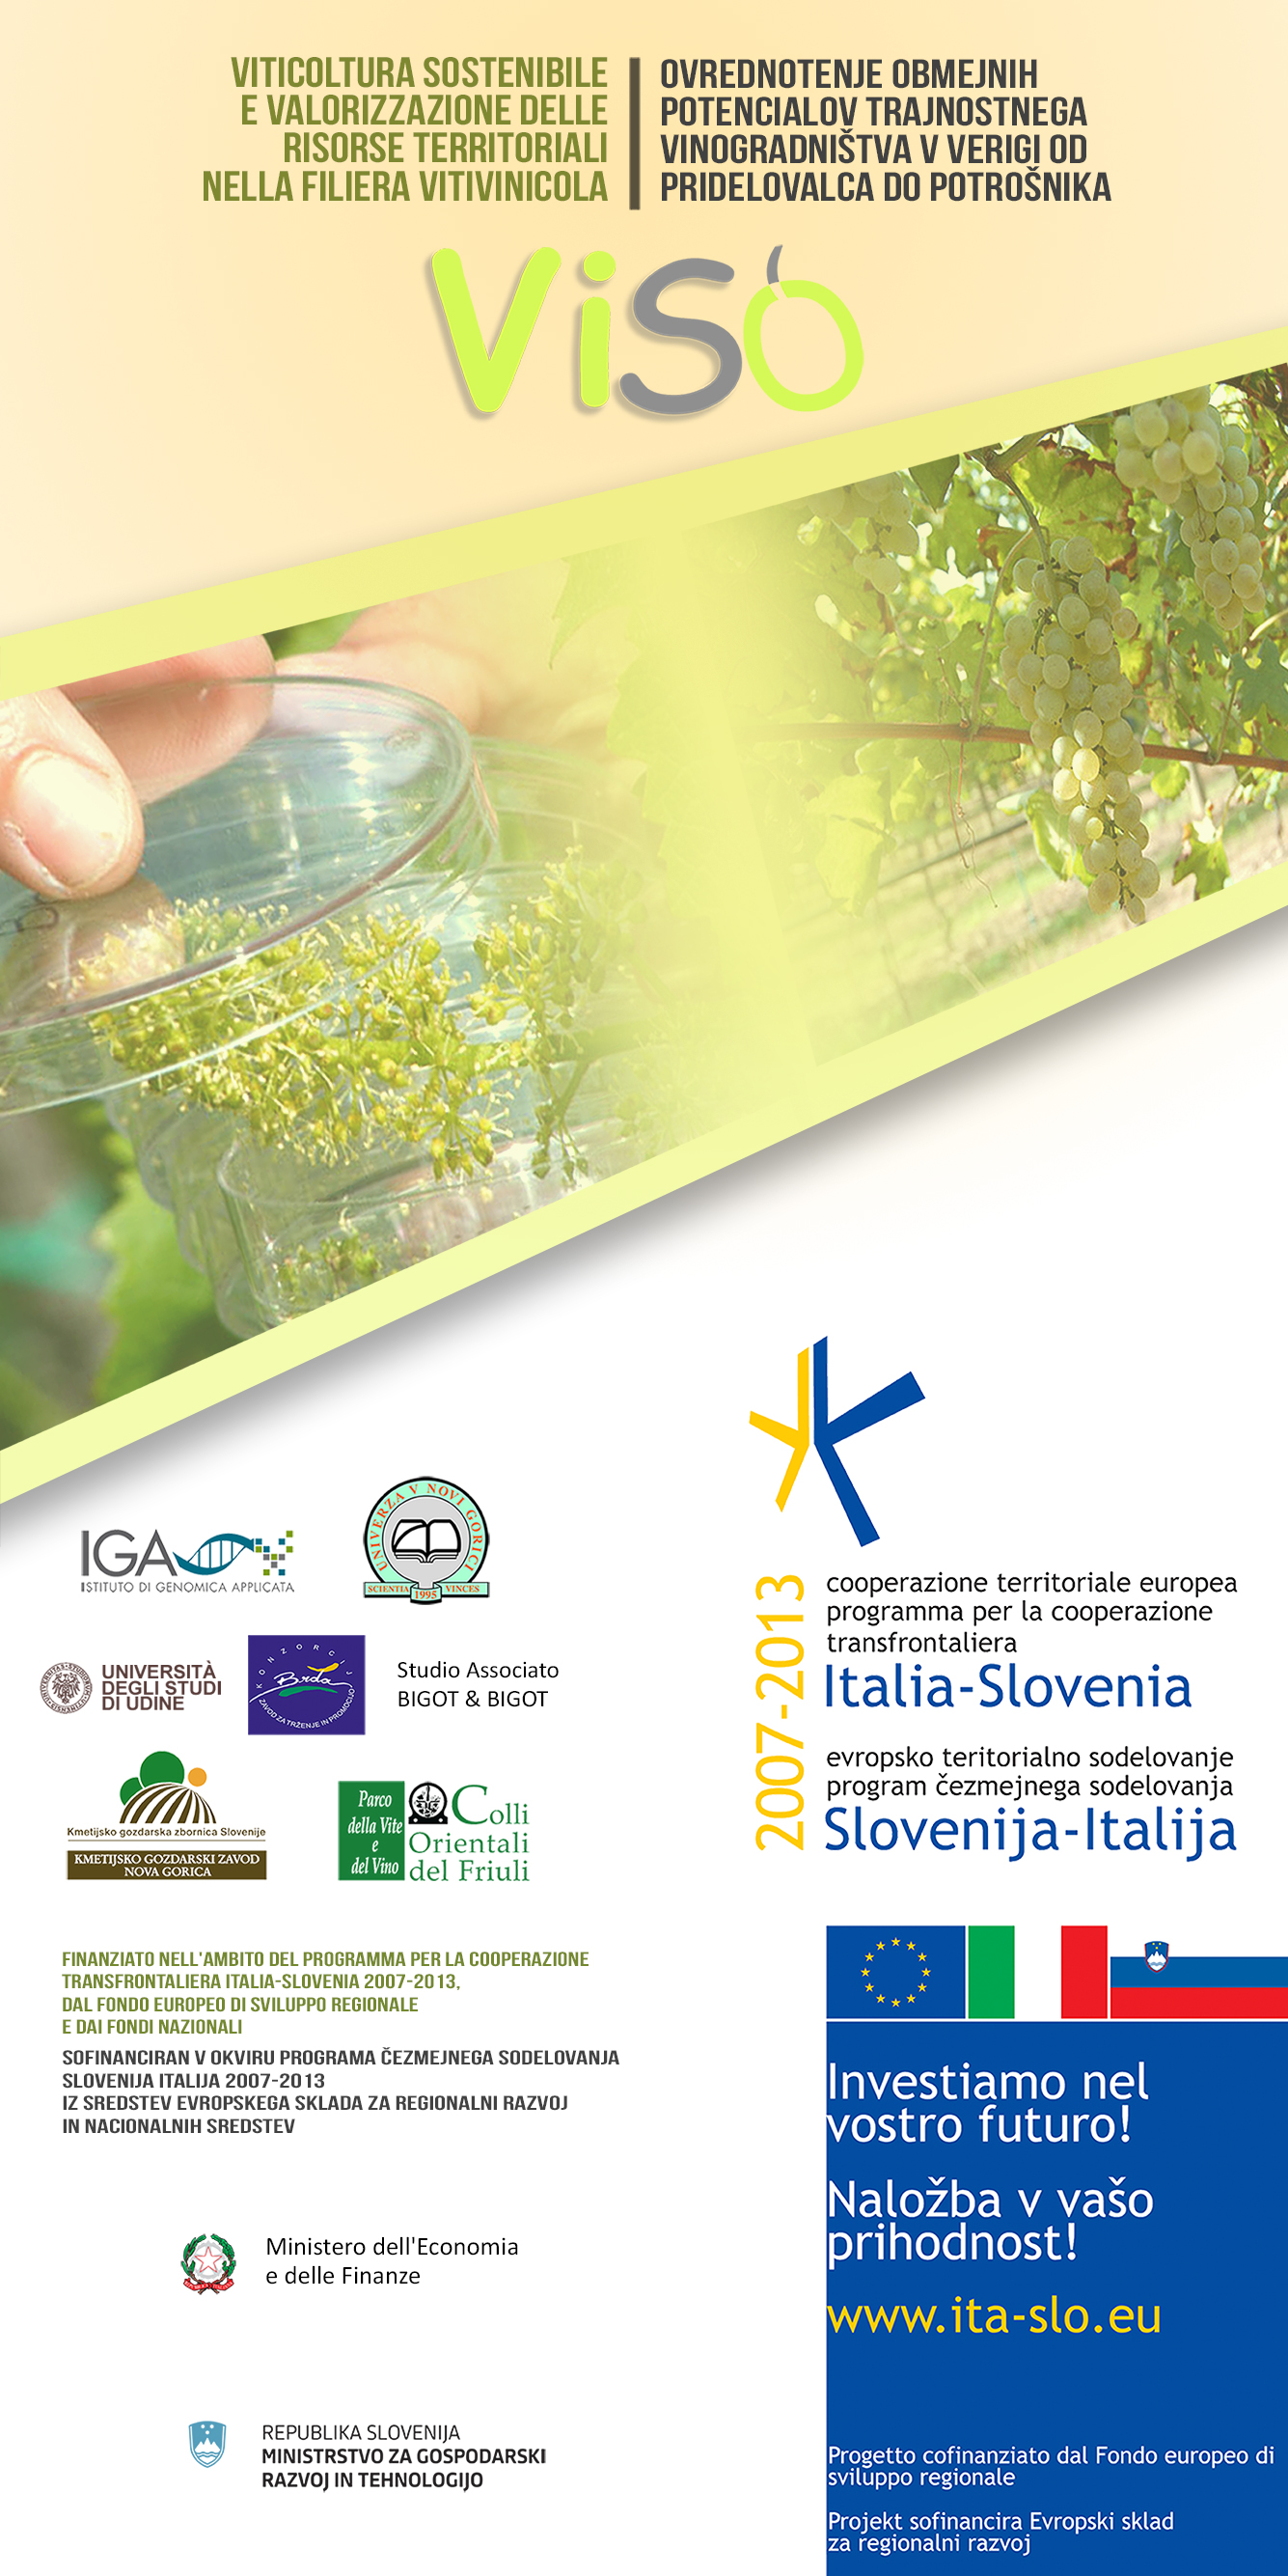 VISO (Sustainable Viticulture): the final conference